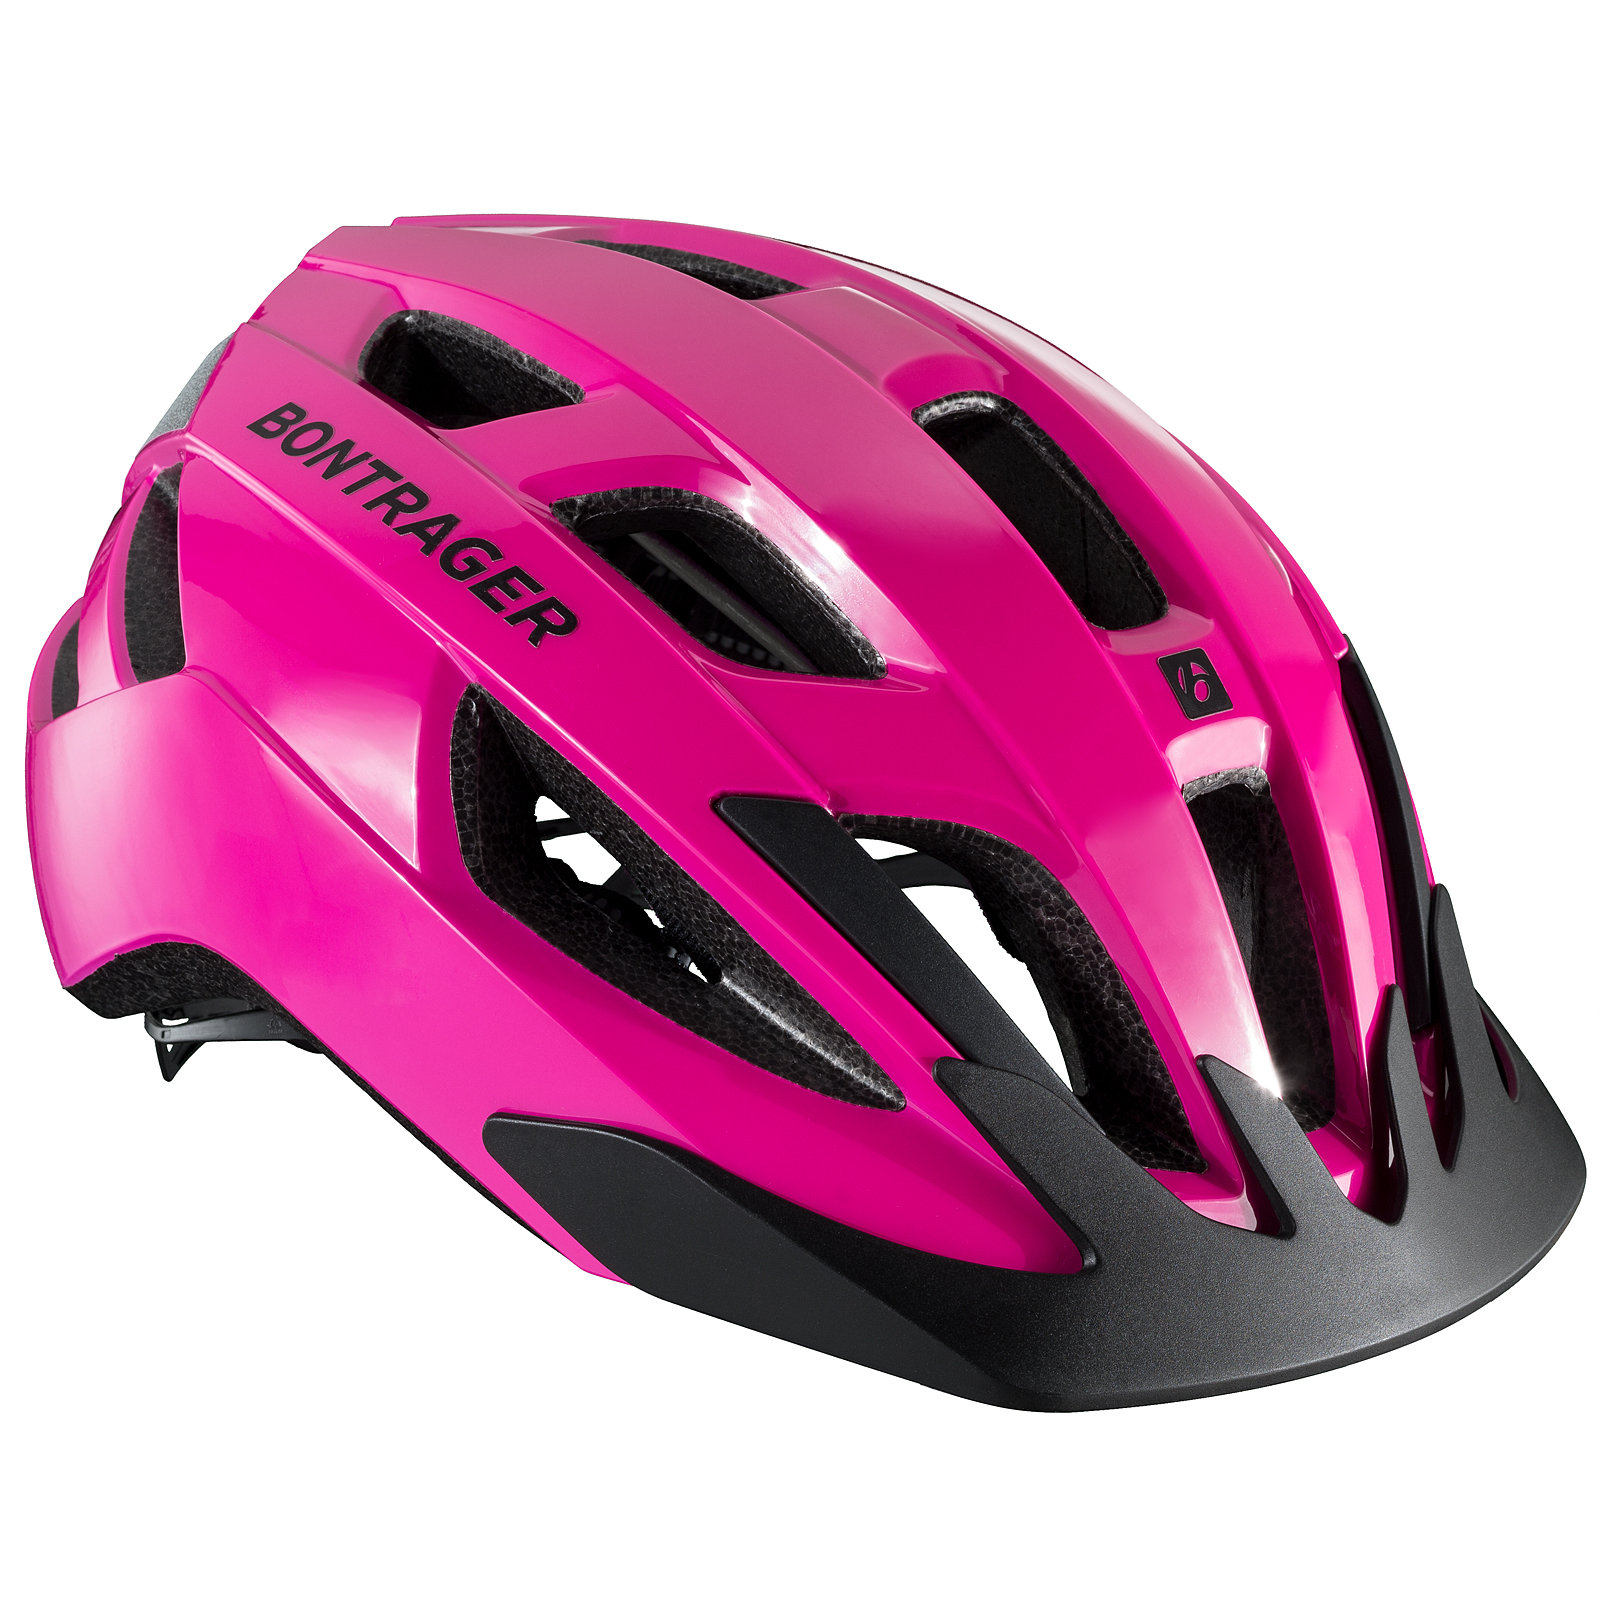 bontrager solstice damen fahrrad helm pink 2019 von top. Black Bedroom Furniture Sets. Home Design Ideas